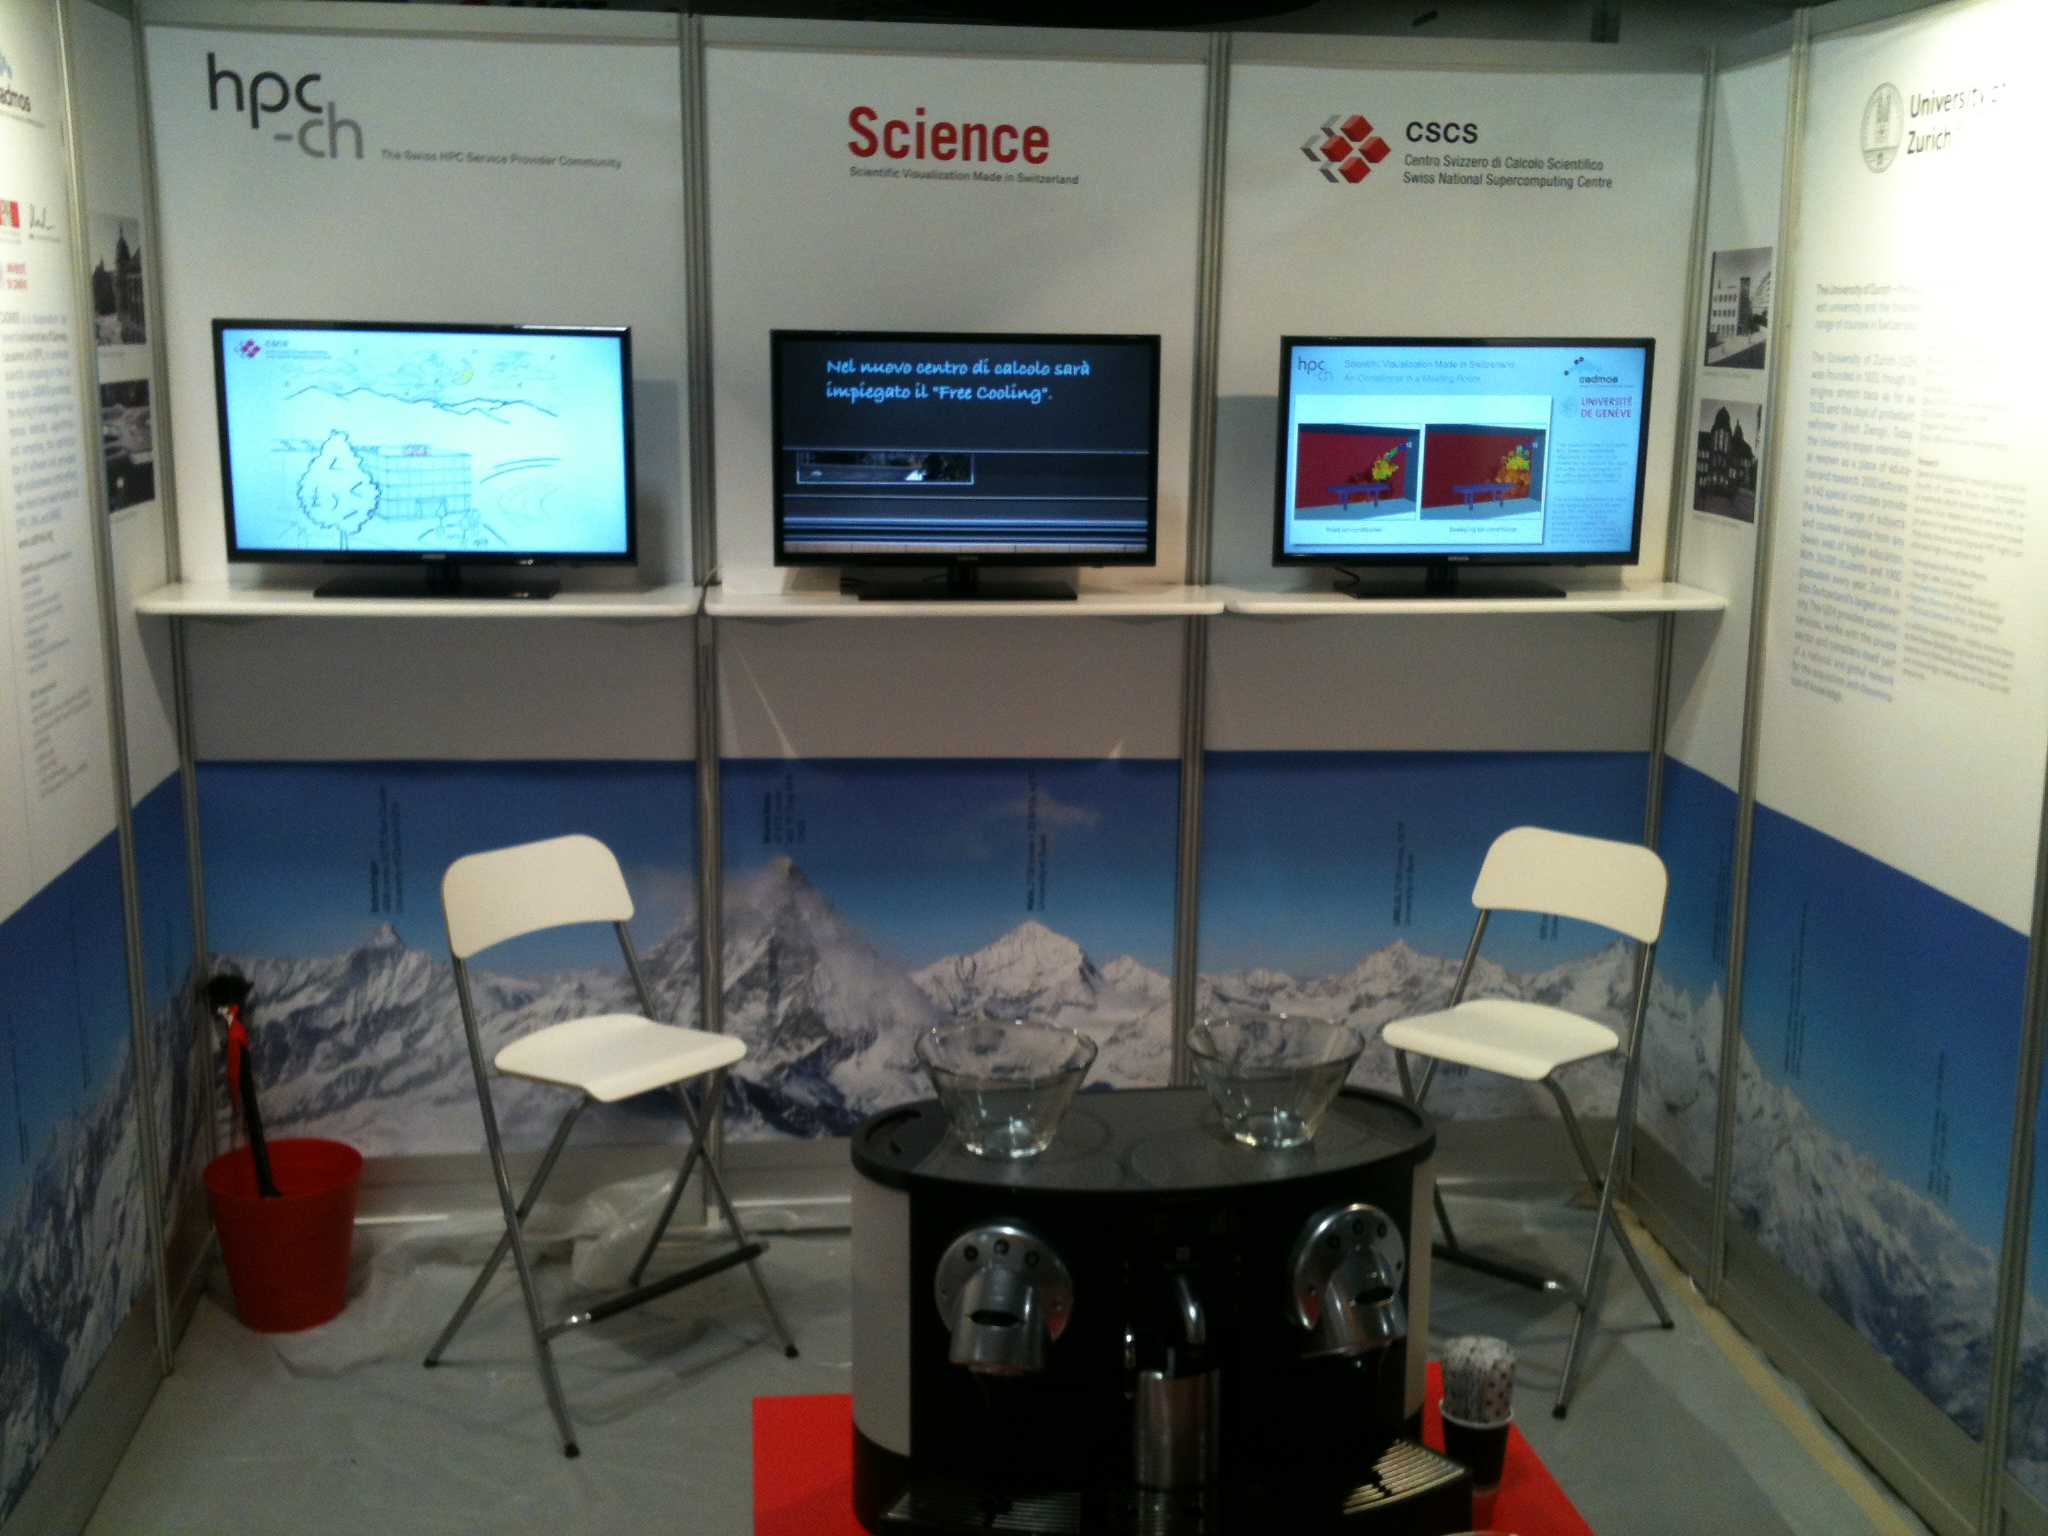 hpc-ch booth #2435 ready for SC12